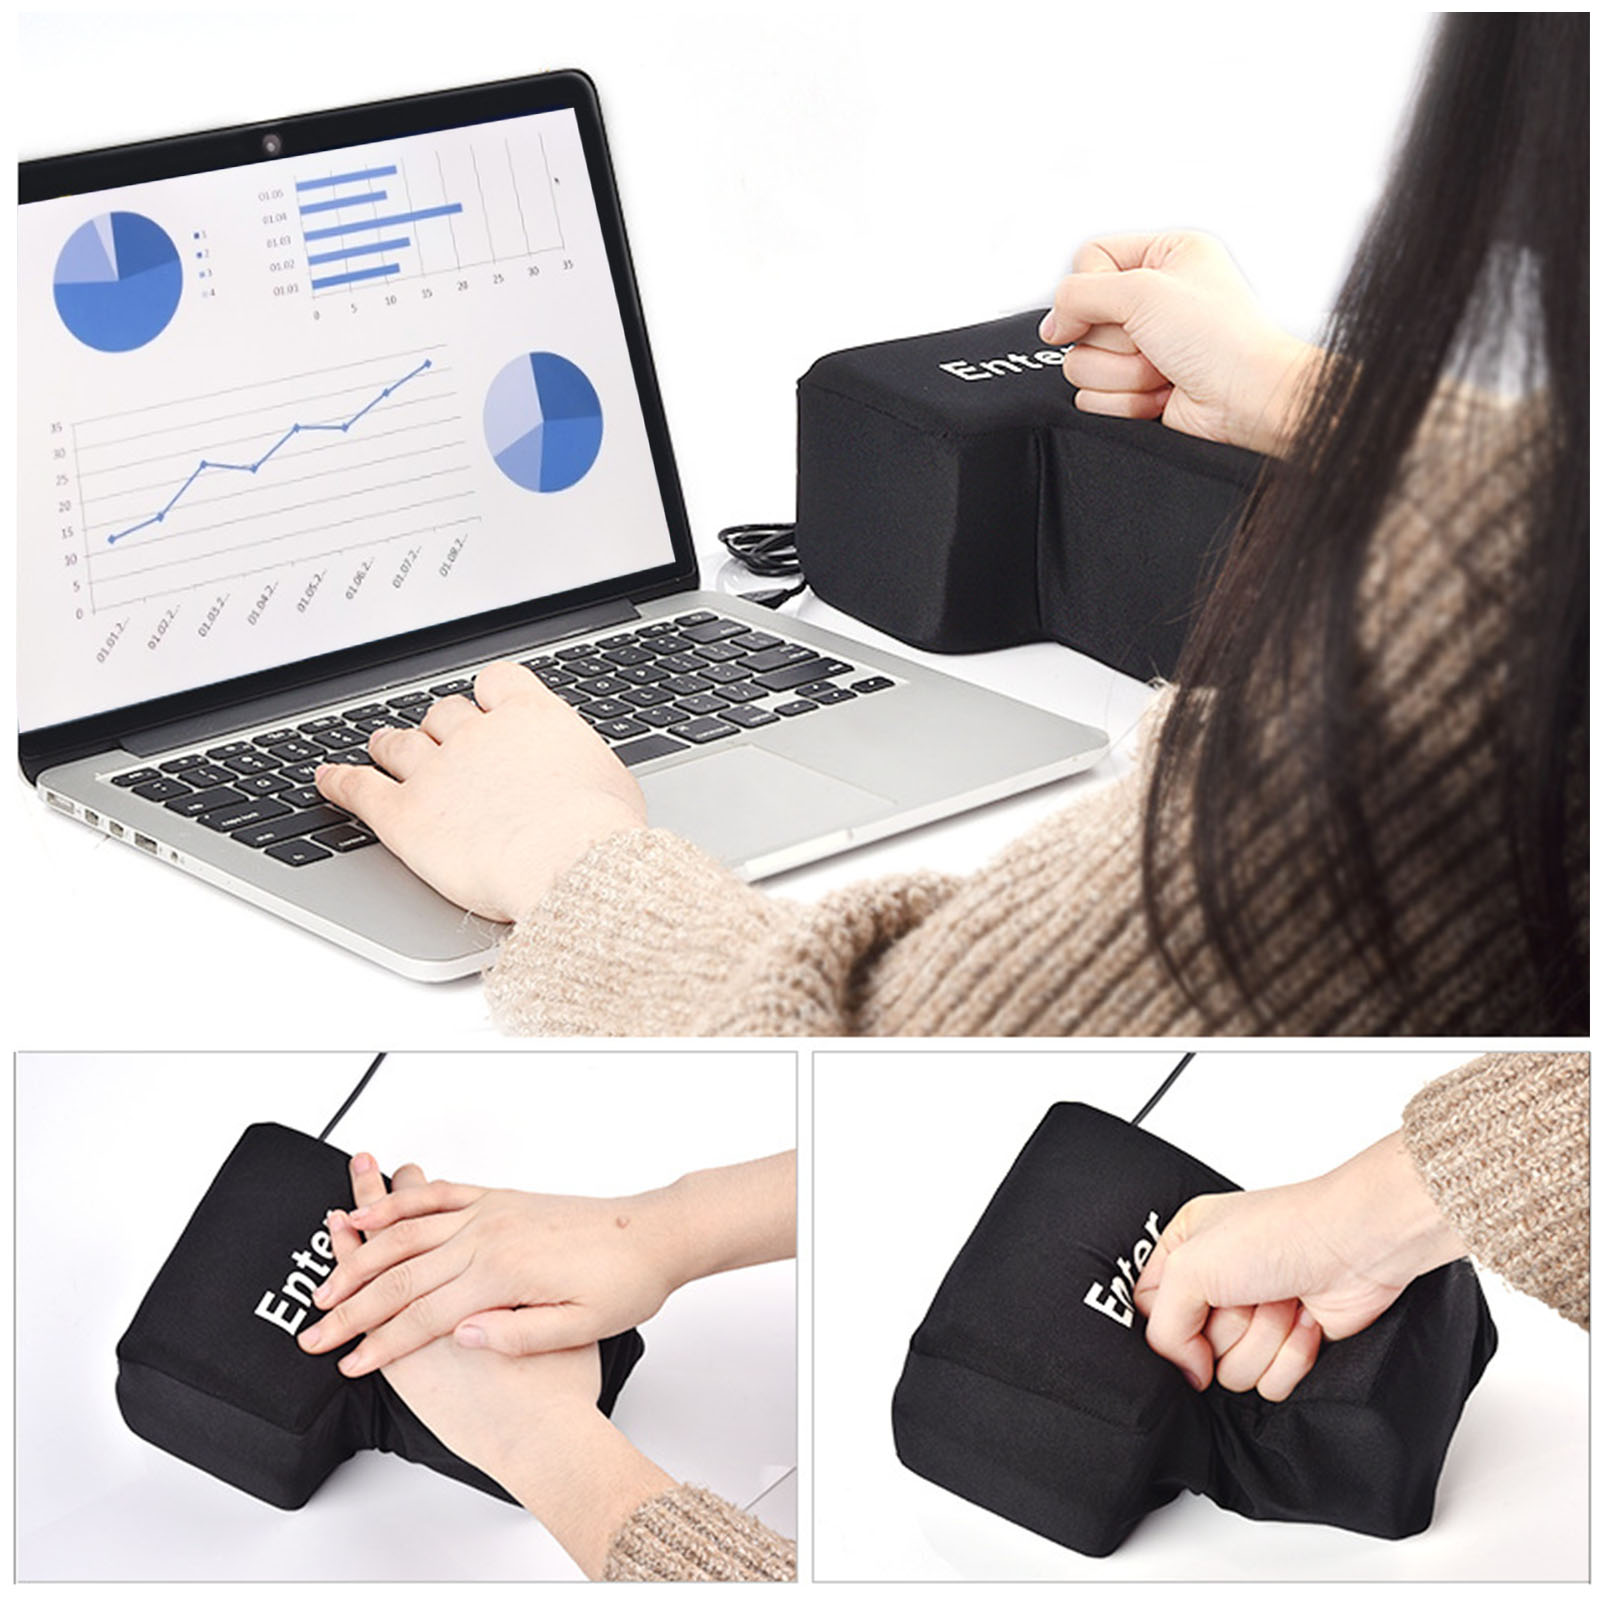 USB Big Enter Key Vent Pillow Soft Computer Button Return Key Office Decompression Desktop Pillow Stress Relief Toy Dropshipping enlarge